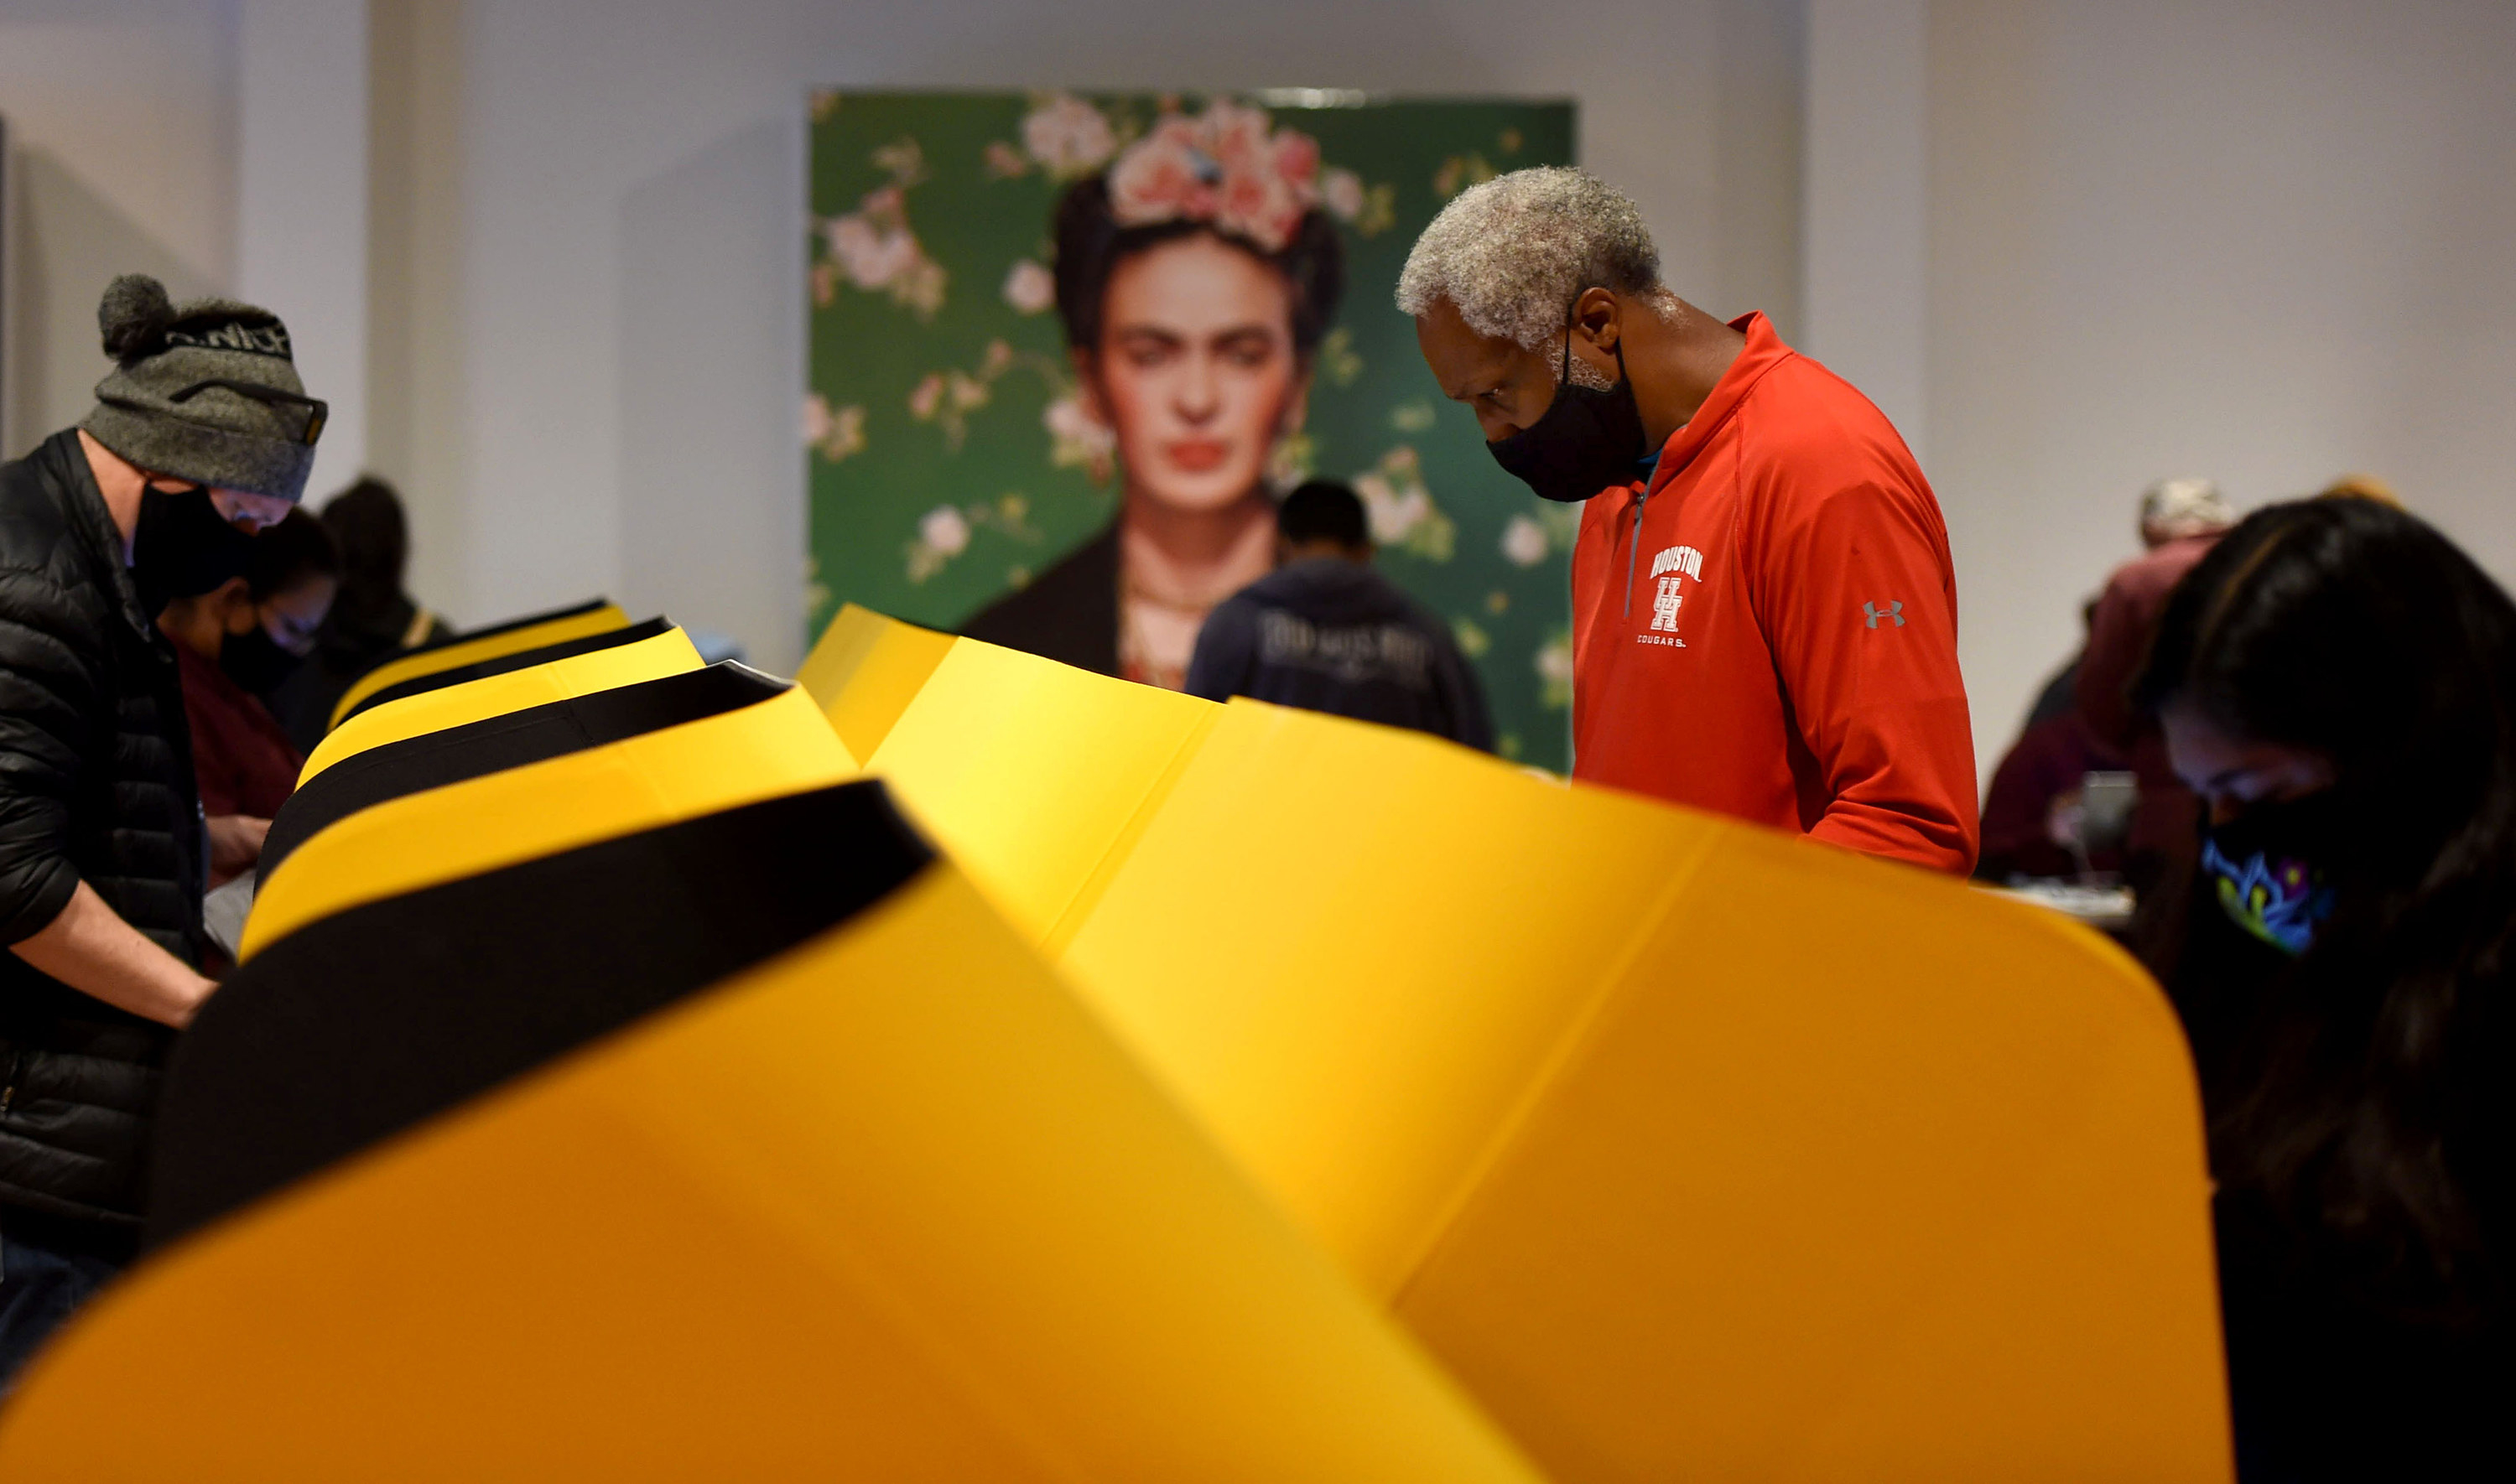 Man voting in front of a portrait of Frida Kahlo.